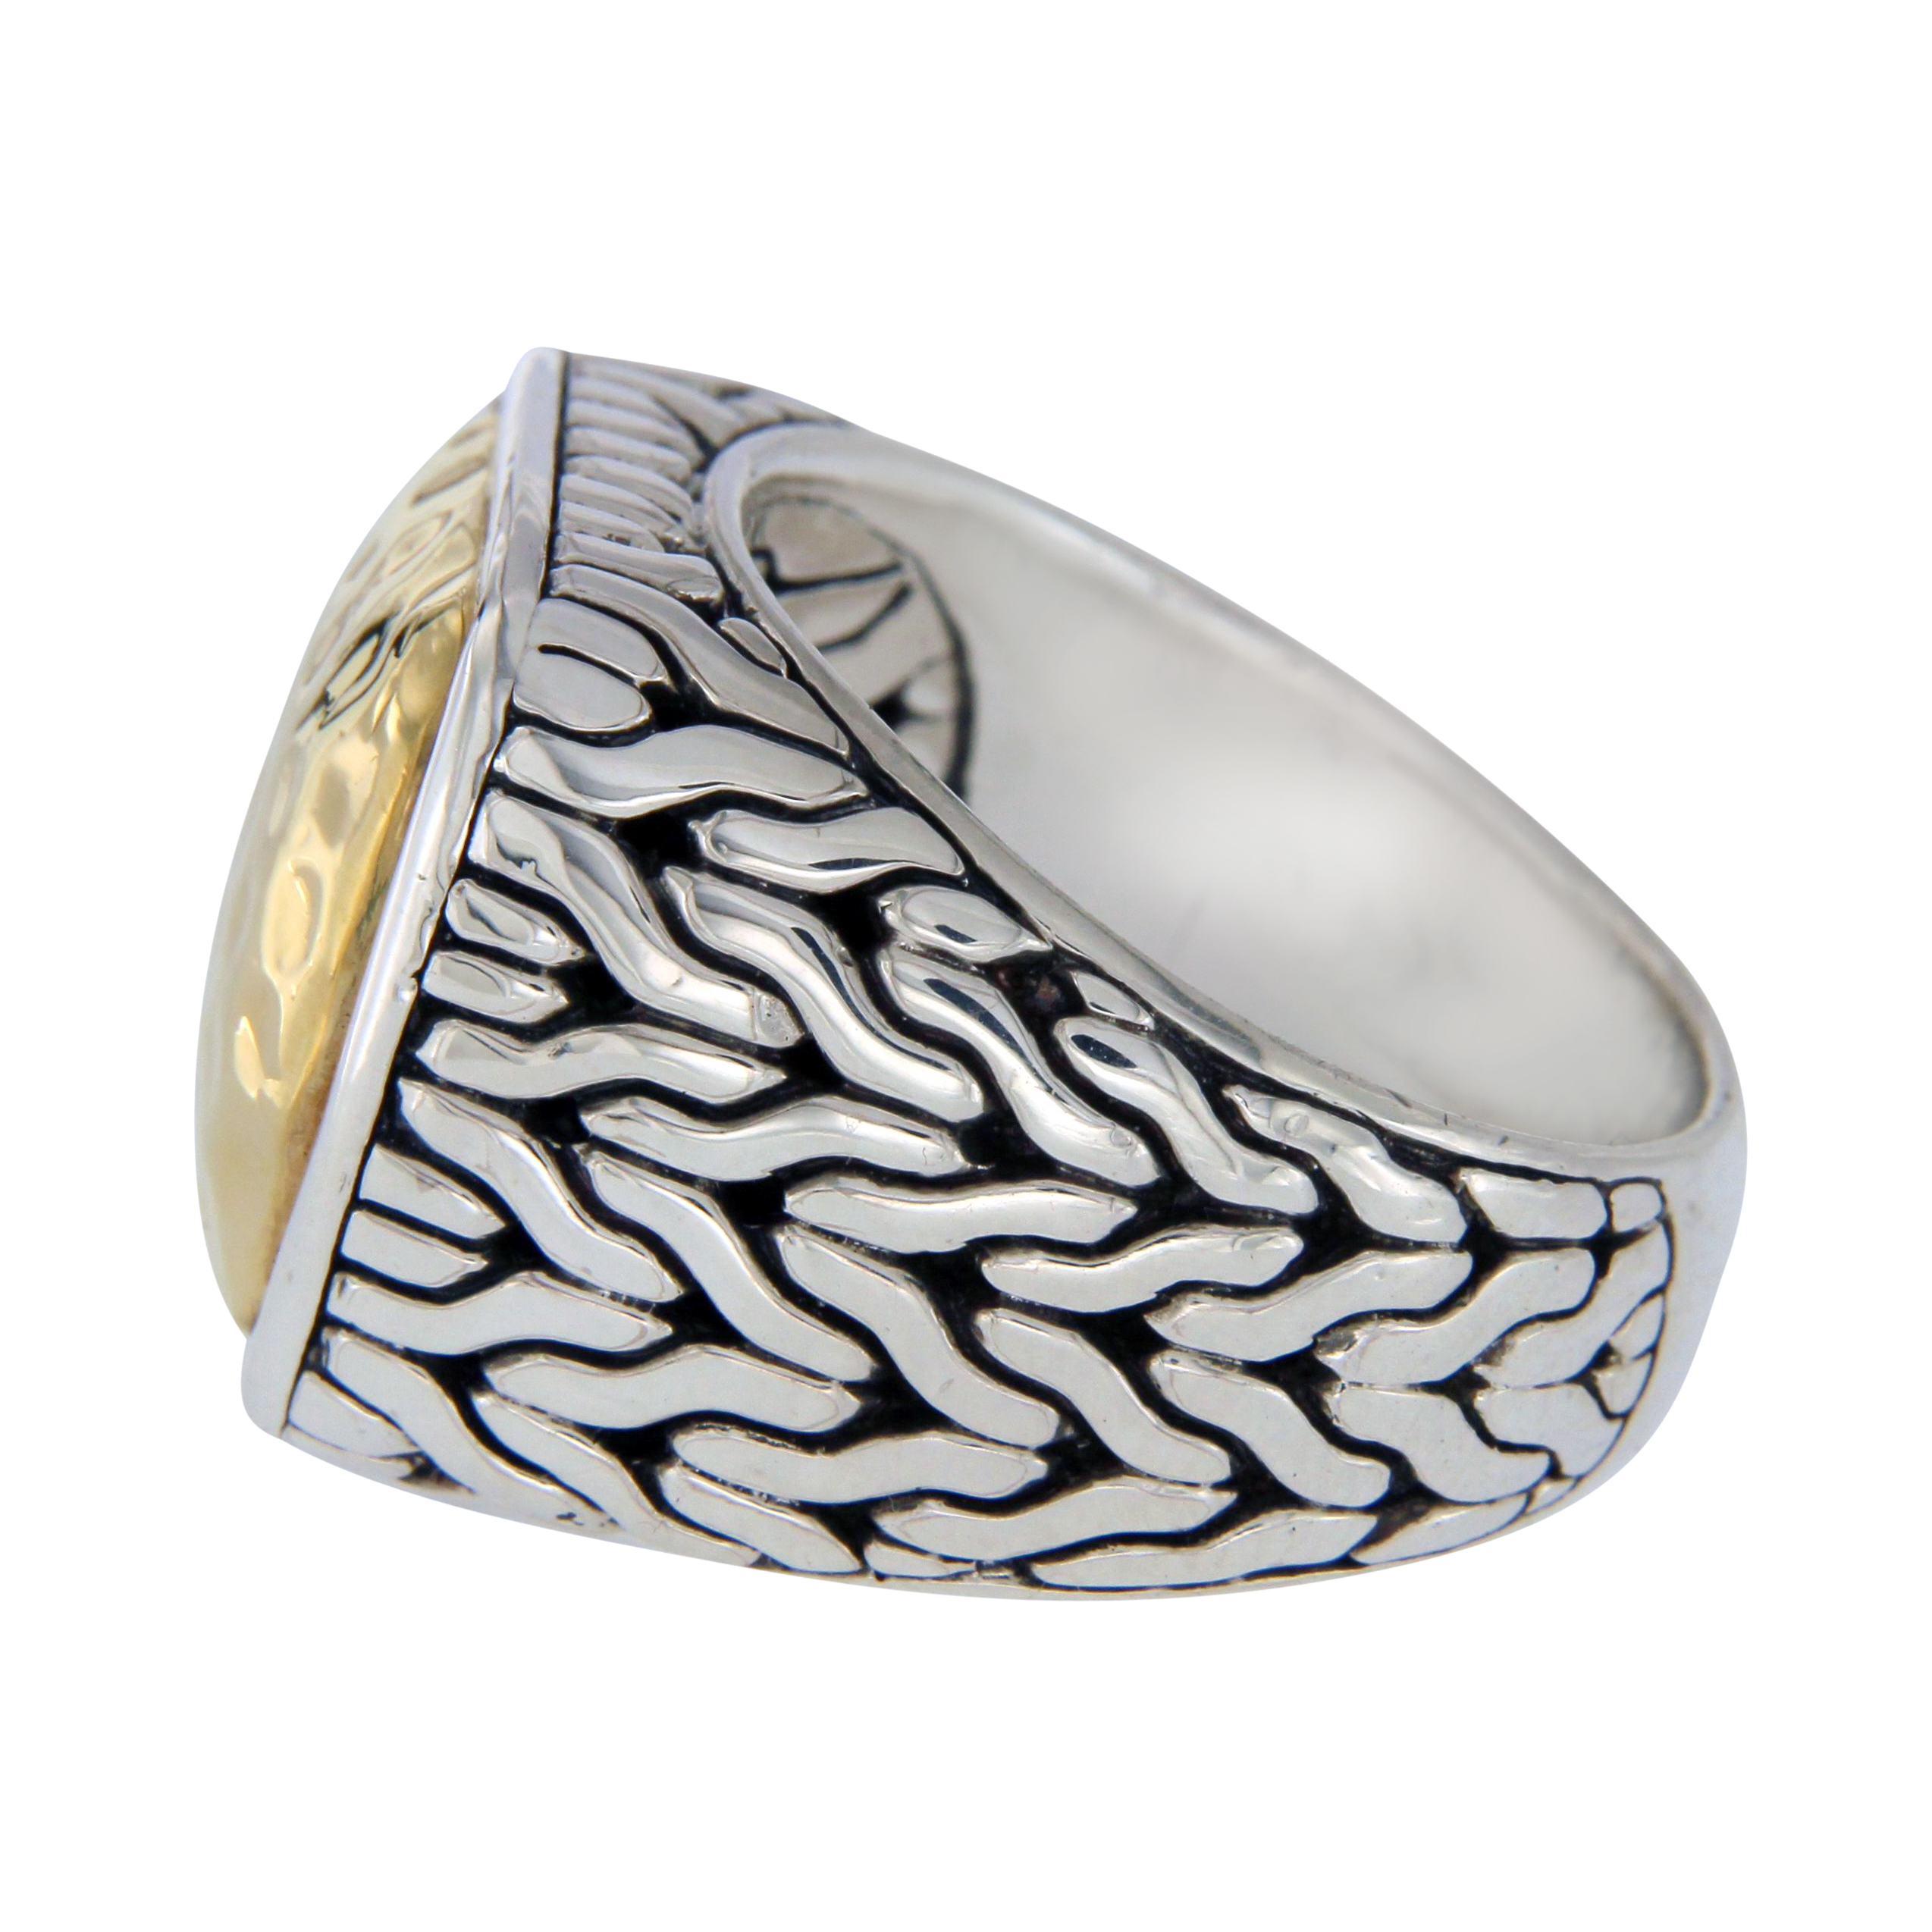 239b226bea455 John Hardy Sterling Silver & 22K Yellow Gold Classic Chain Mens Ring Size  11 | John Hardy| Buy at TrueFacet